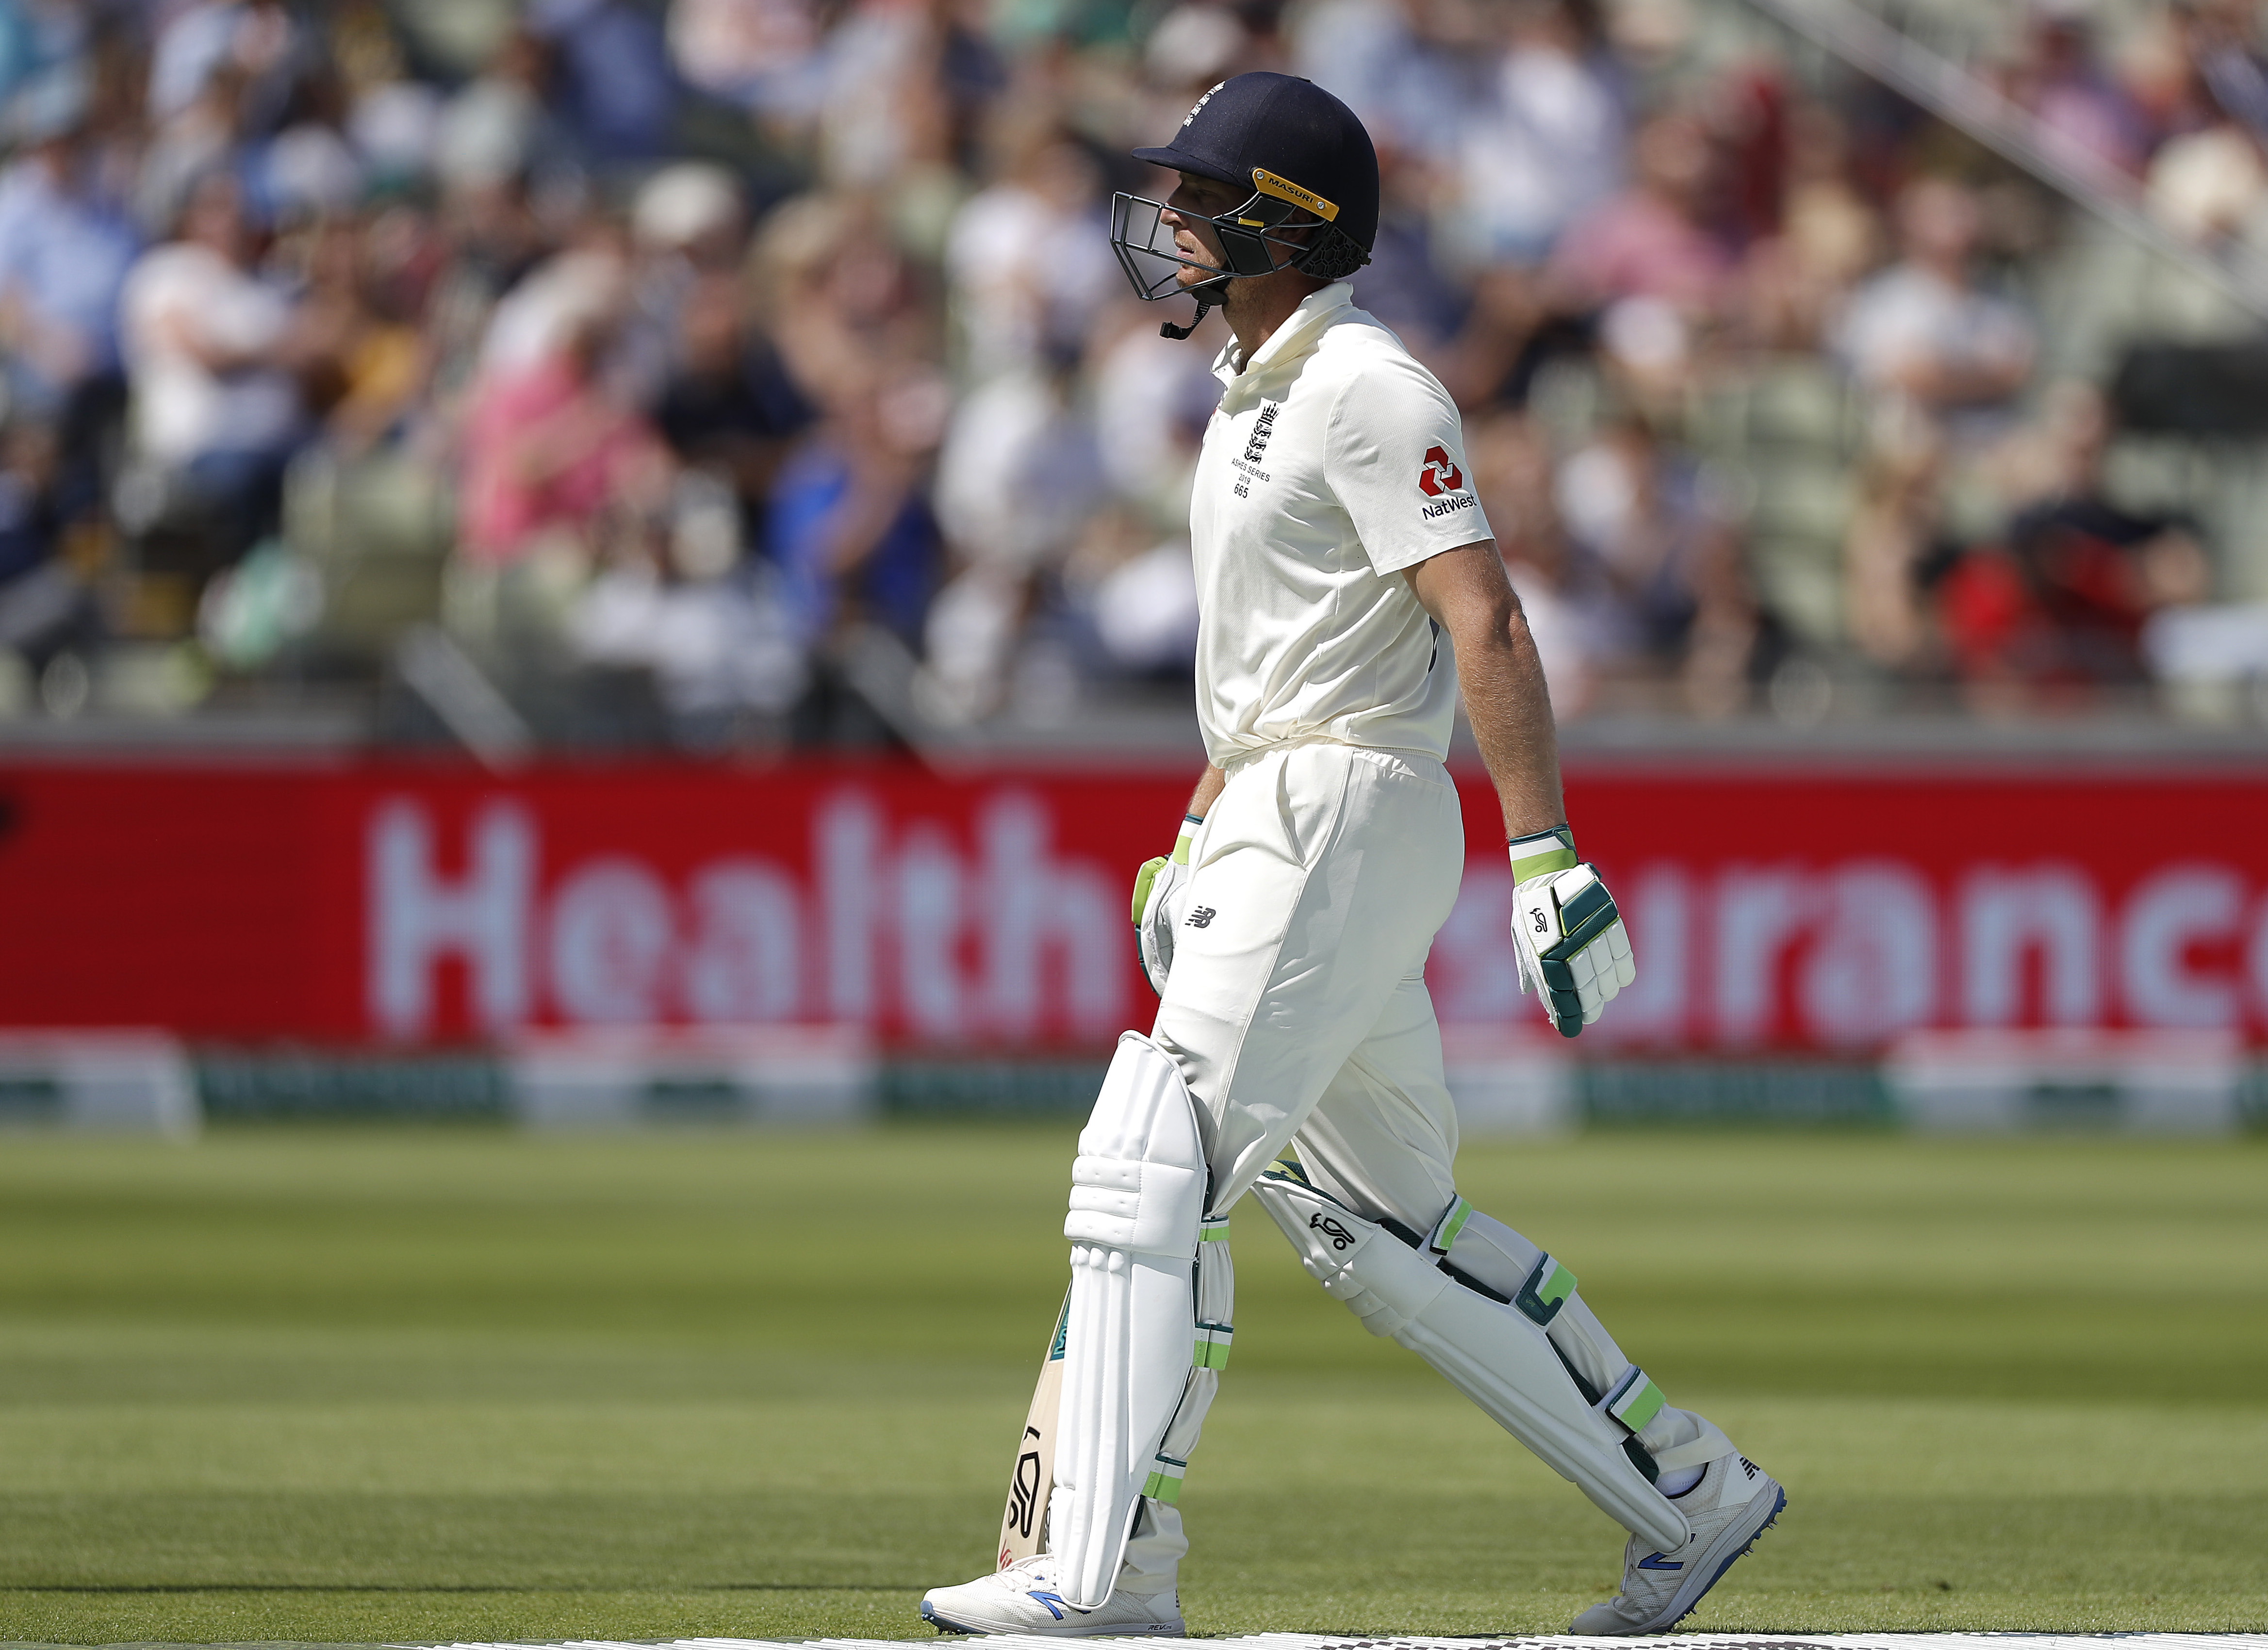 England news No reason to panic, says Buttler, after heavy defeat 11 Aug 19 - International Cricket Council thumbnail